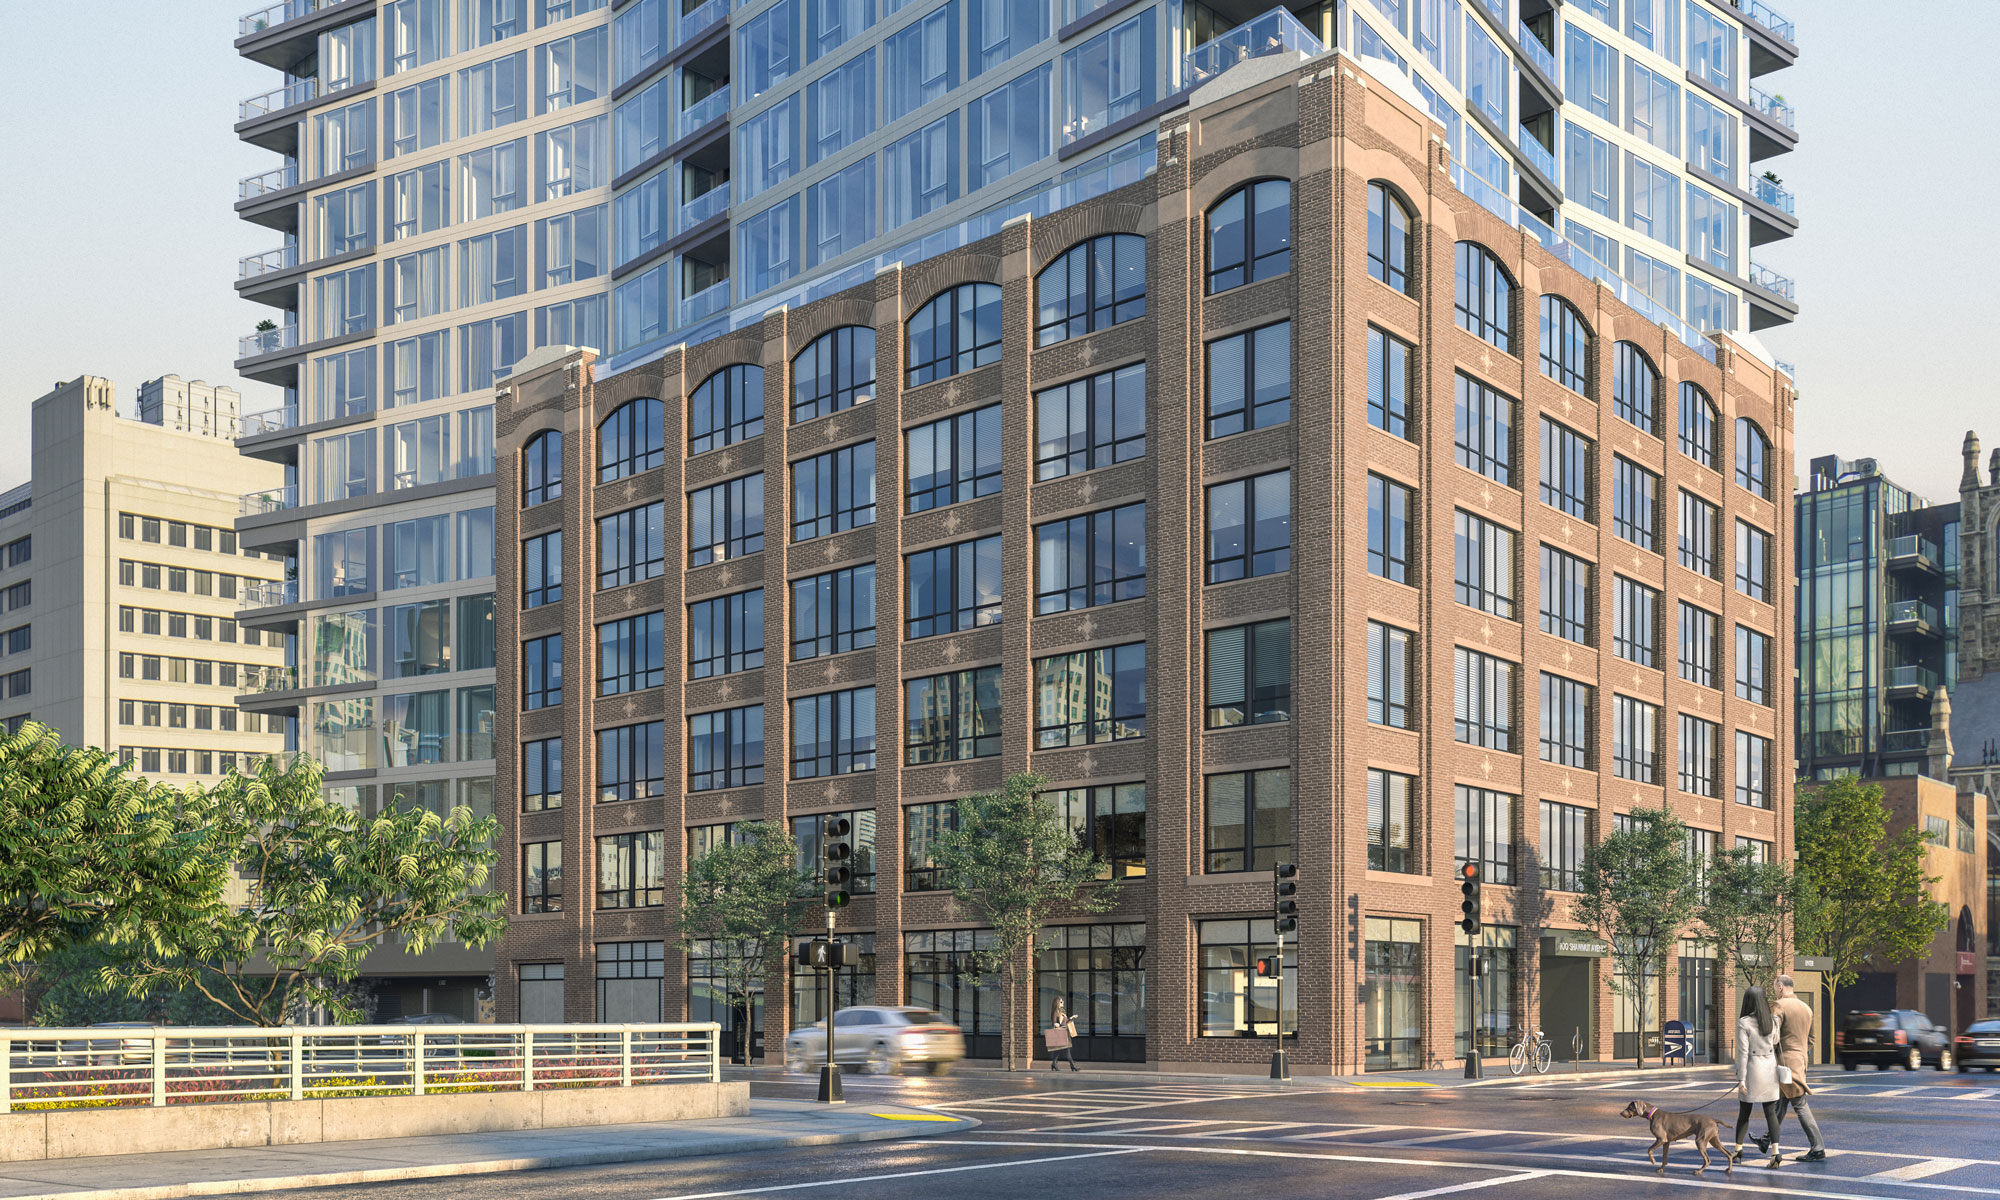 The Davis Companies Celebrates the Groundbreaking of $170 Million, 138 Unit Condo Building in Boston